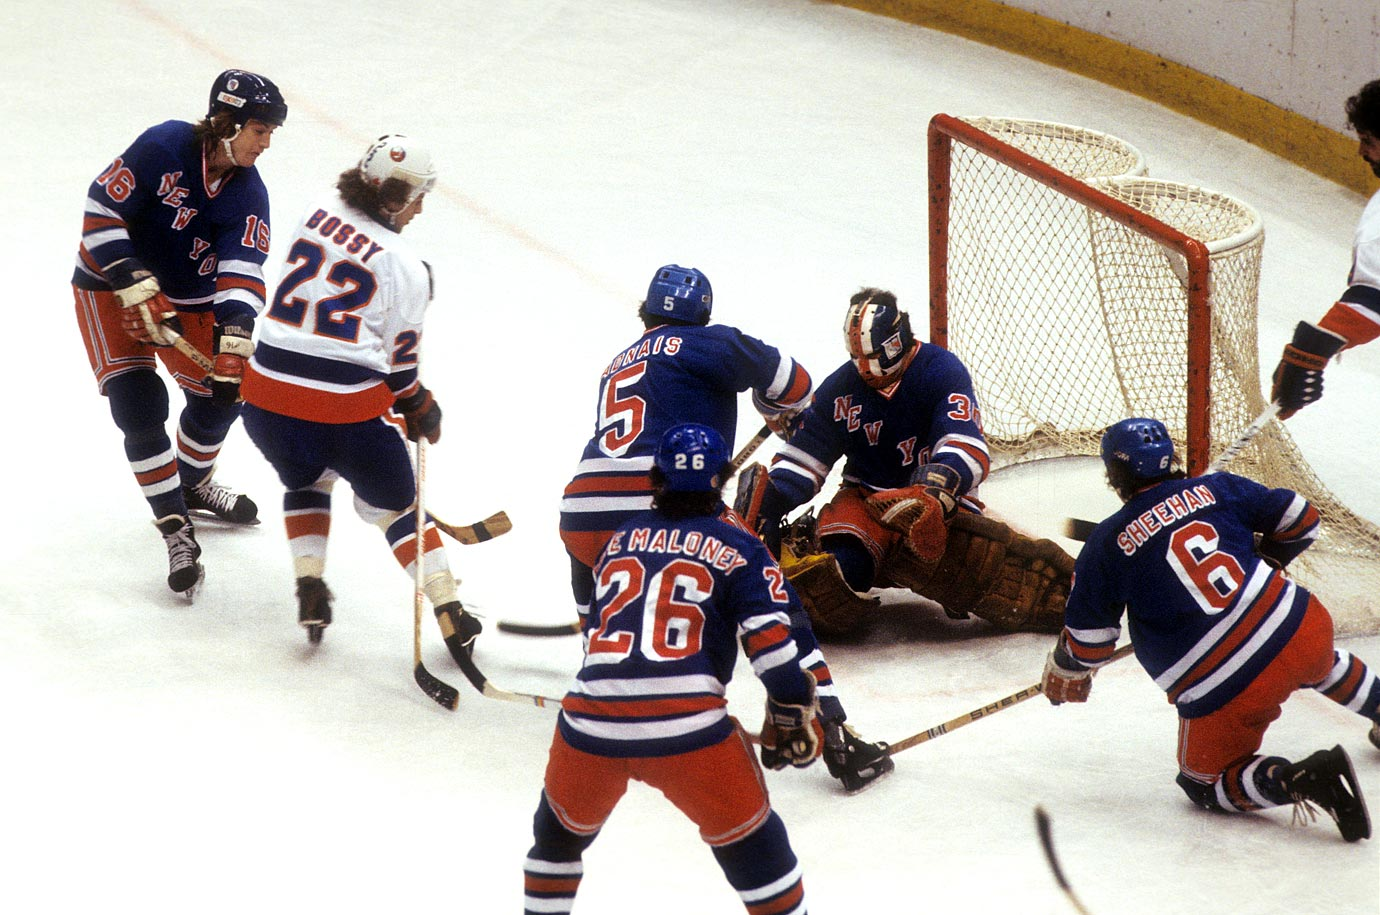 This went only six, but the rivalry's intensity earns it a spot among the all-time greats. The Isles, led by Bryan Trottier and Mike Bossy, were the top regular season team and expected to easily handle their arch-rivals but they twice needed OT to get to Game 5, which the Rangers won, 4-3. In the decisive Game 6, Ron Greschner and Don Murdoch scored 3:42 apart in the second period and goalie John Davidson continued to shine while leading the Rangers to a clinching 2-1 win that handed the Isles a bitter defeat that inspired the birth of their dynasty the next season.